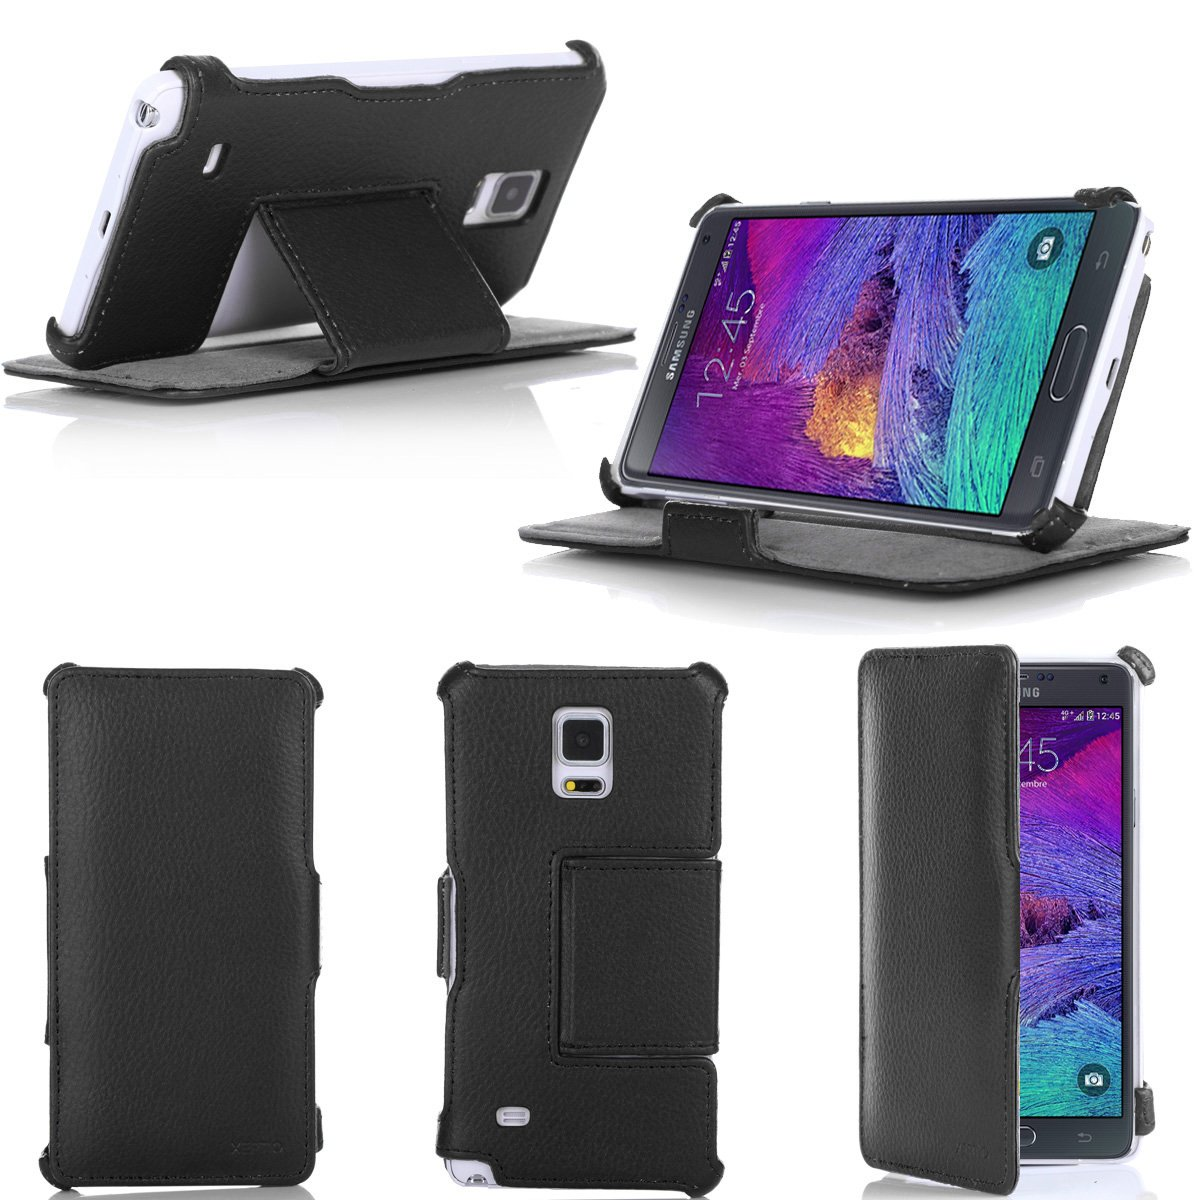 Etui Samsung Galaxy Note 4 N910C (Wifi   LTE   4G) noir 16 32 64 GB Cuir  Style avec stand  Amazon.fr  High-tech 6d848f338c9a